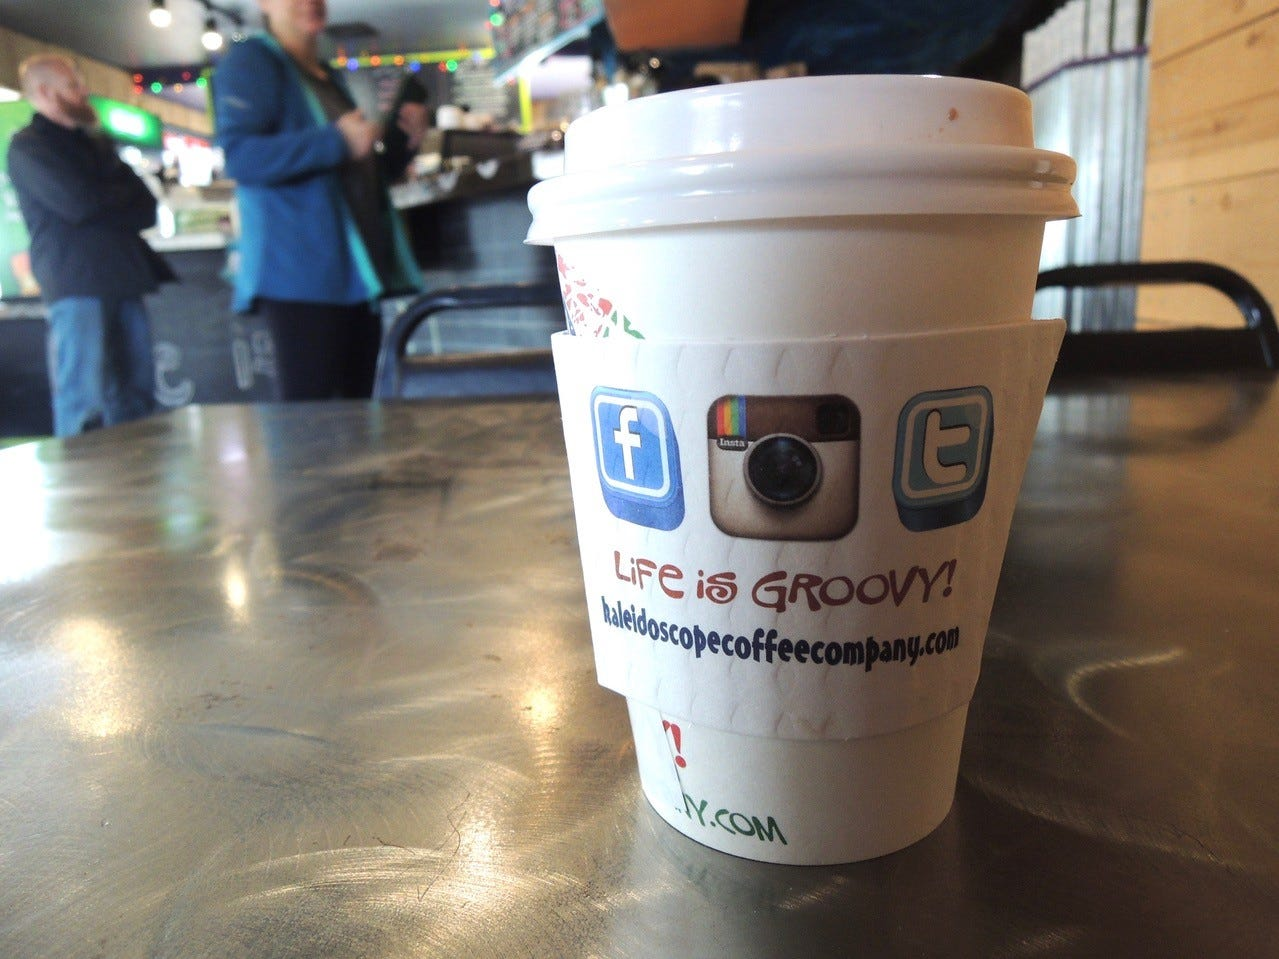 The caramel-flavored mocha is a popular coffee drink at Kaleidoscope Coffee.